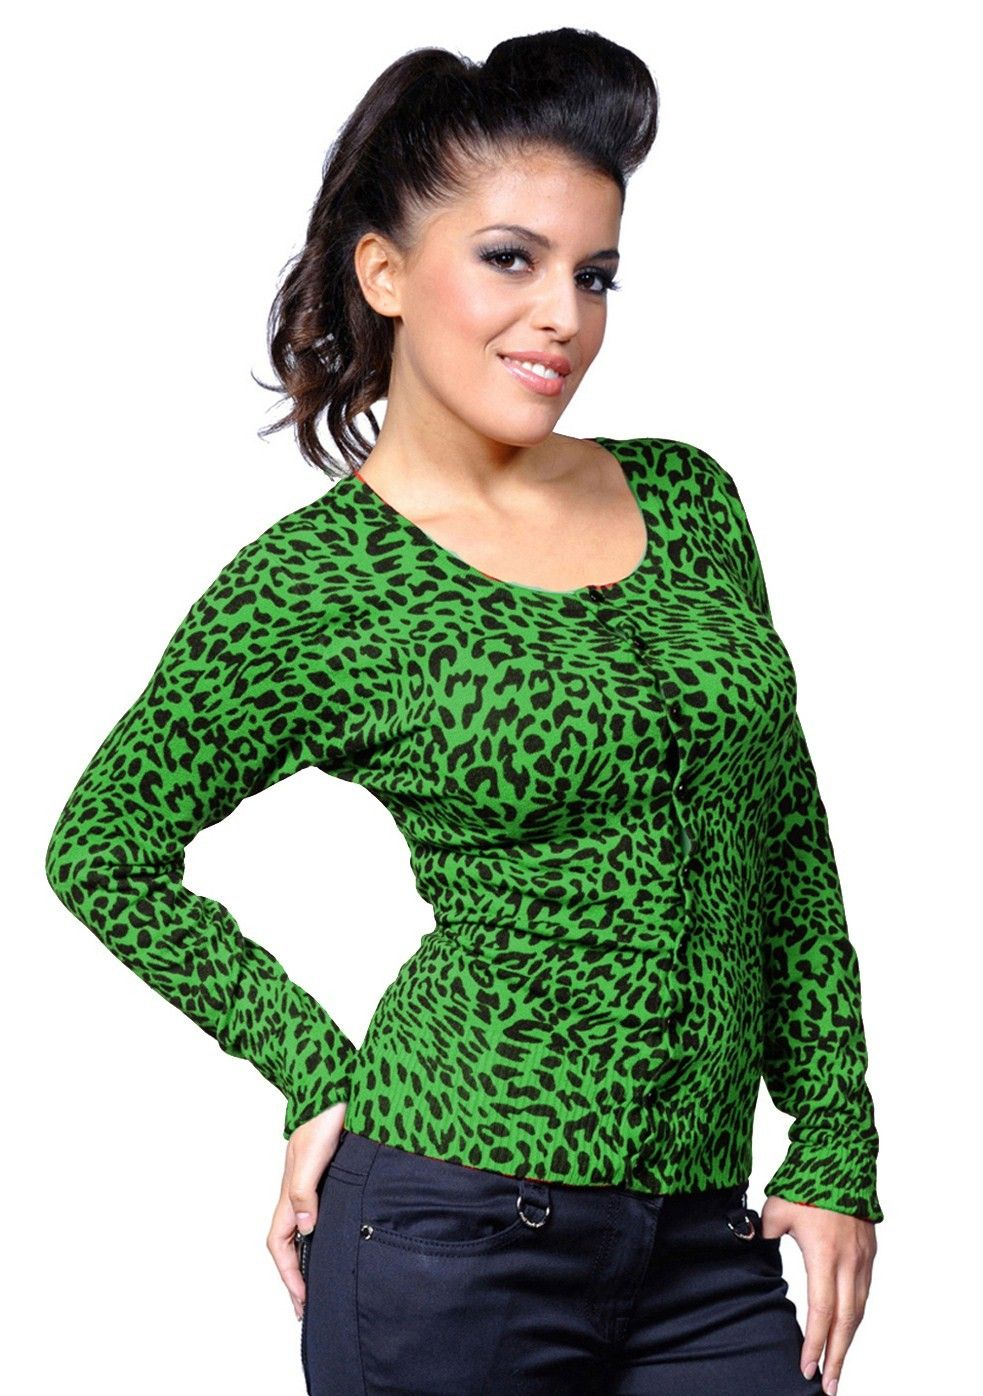 LaFrock's Retro style Green Leopard Print Cardigan - Fashion and ...